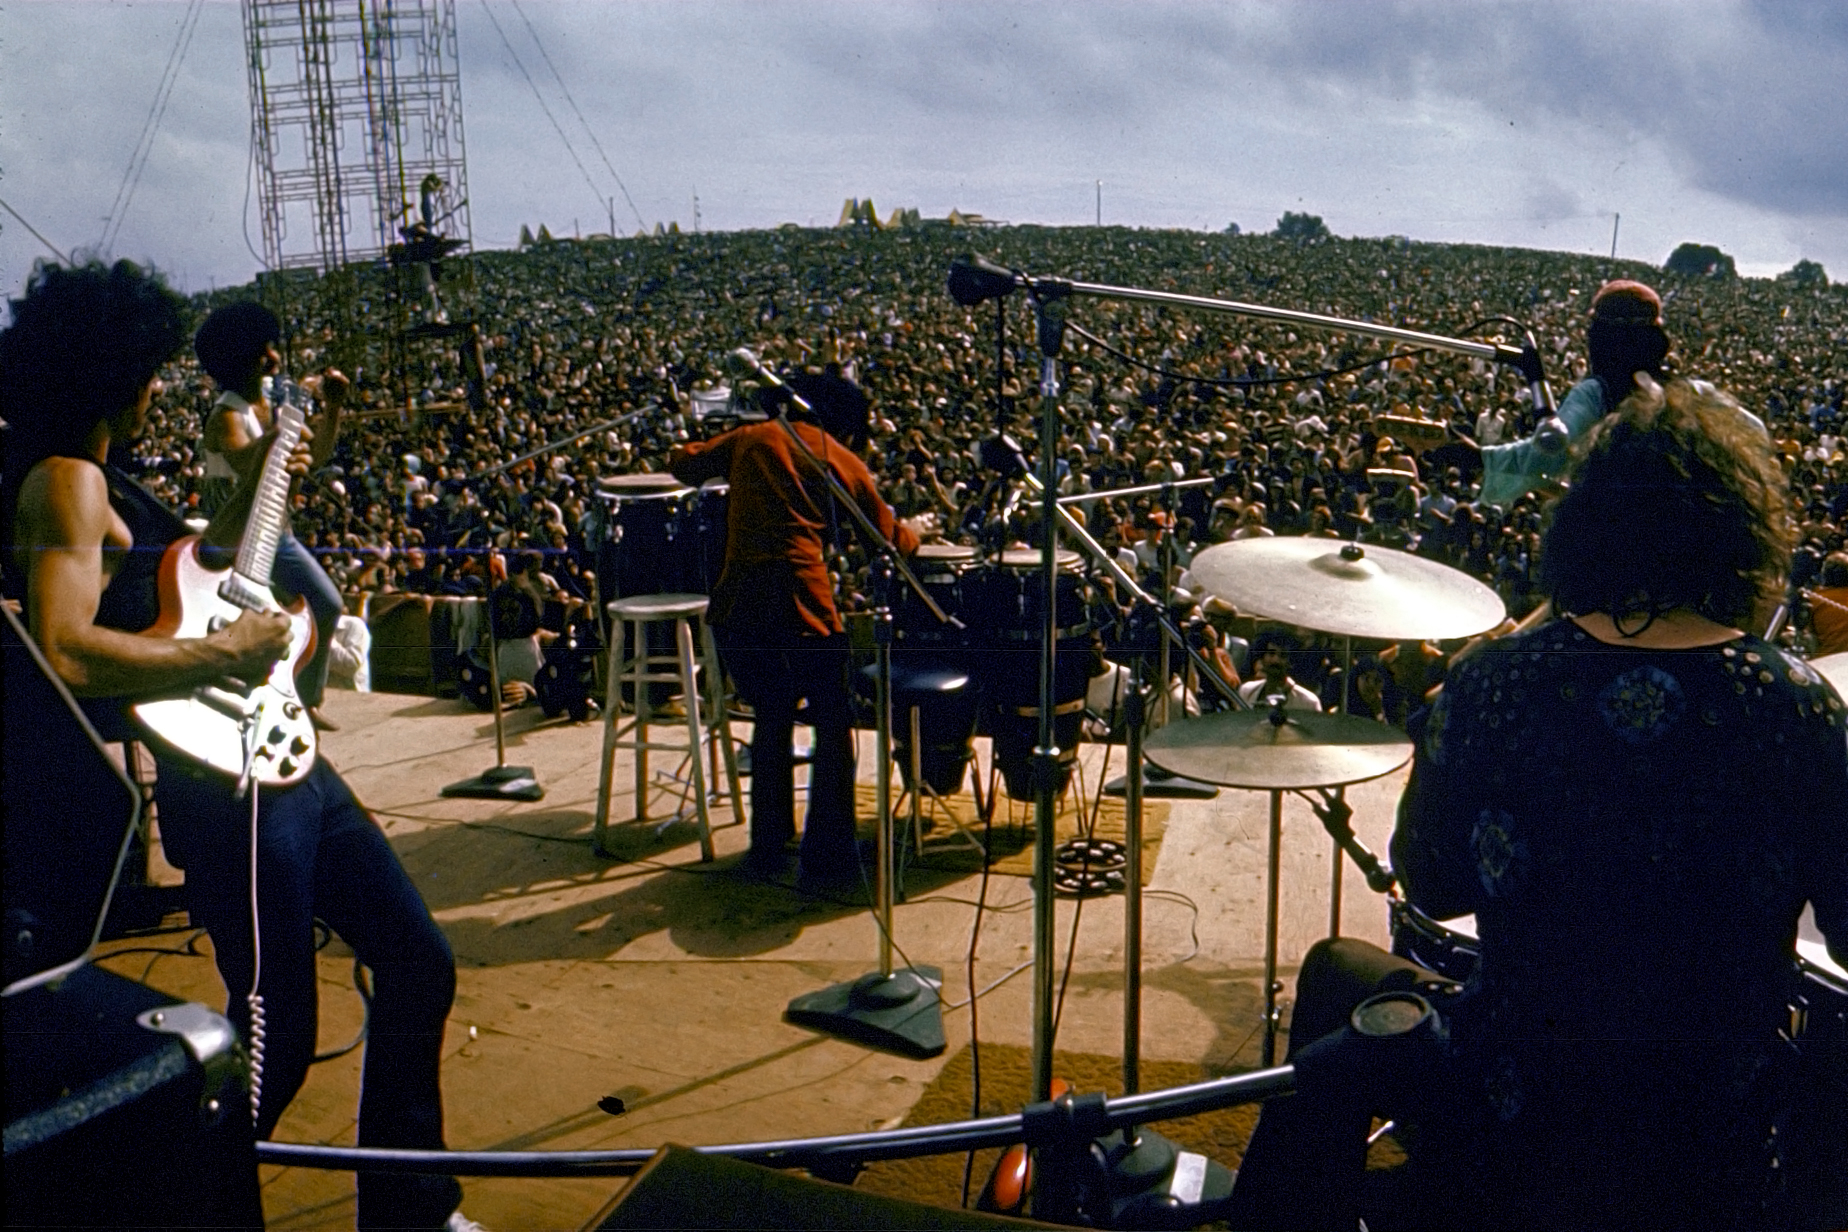 Mexican guitarist Carlos Santana (left) and his band perform on stage to a huge audience at the Woodstock Music